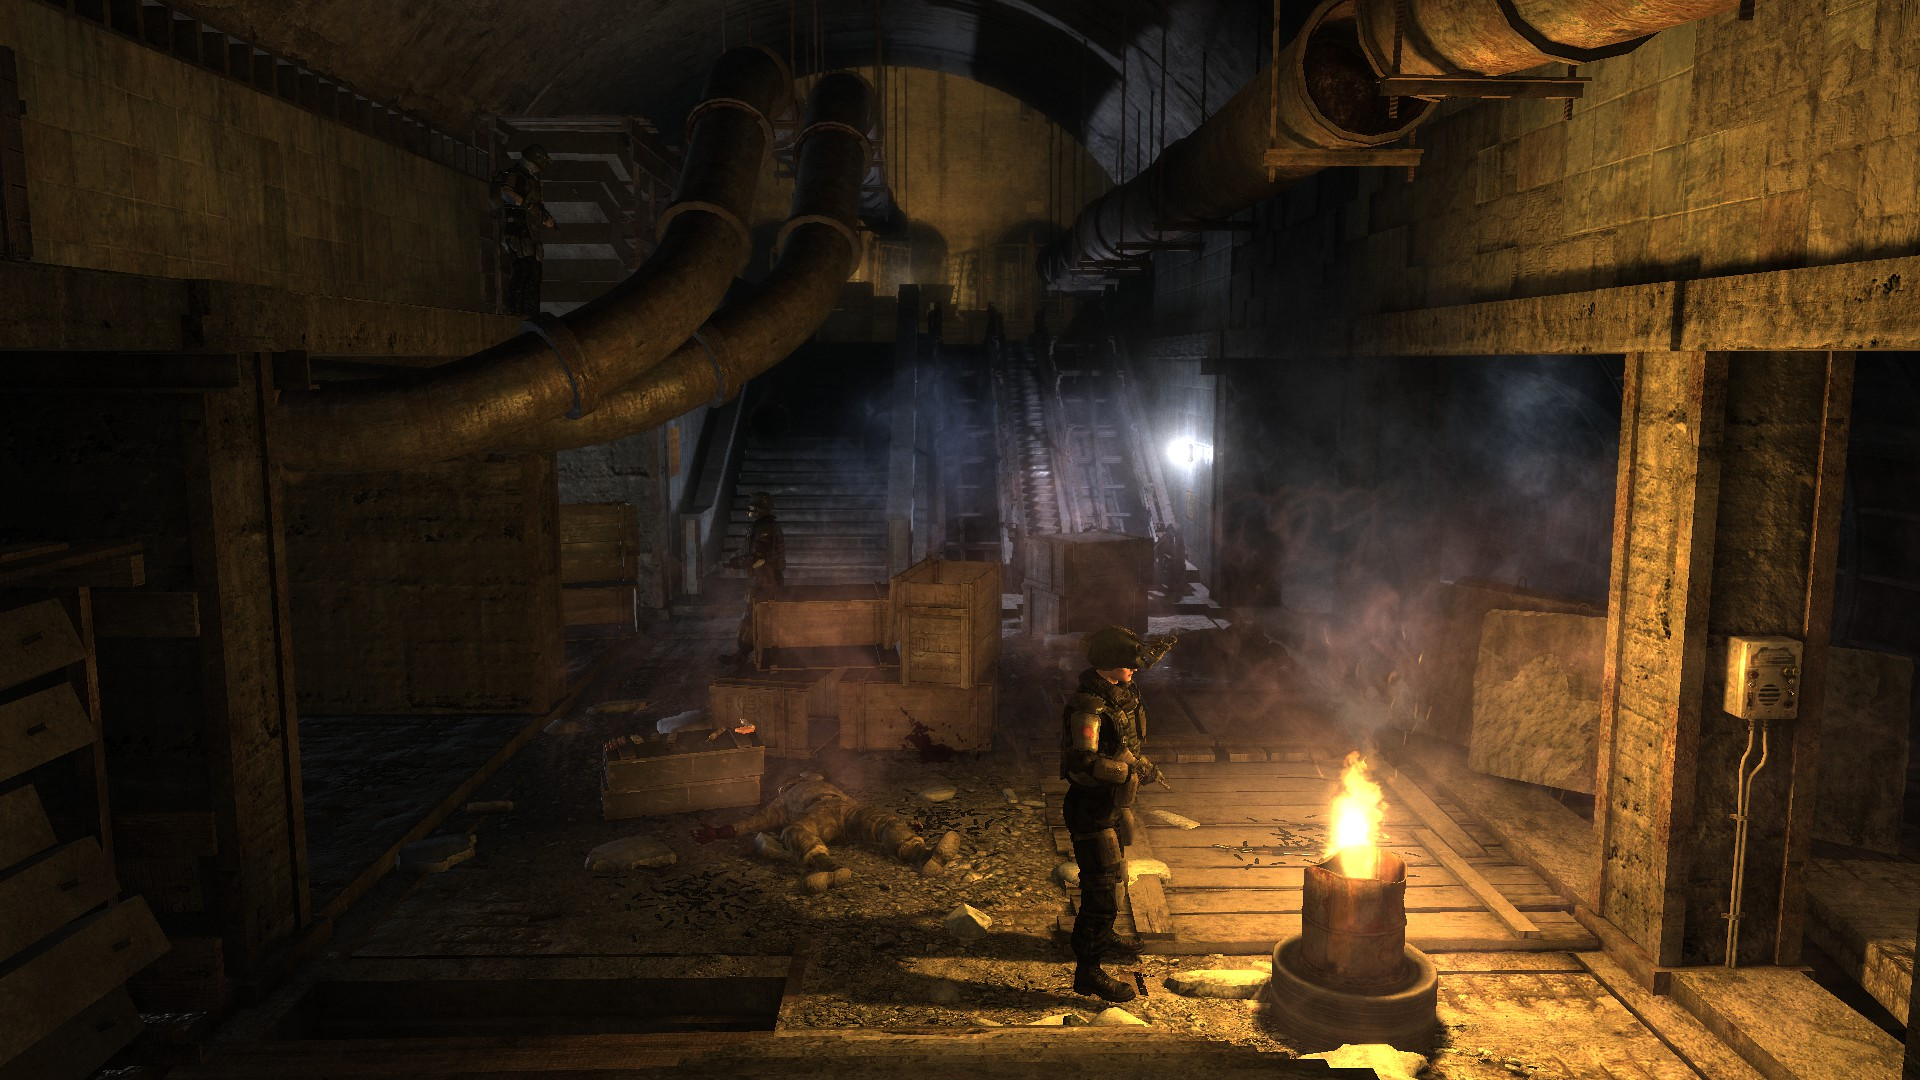 Black Station (Metro 2033 Level)